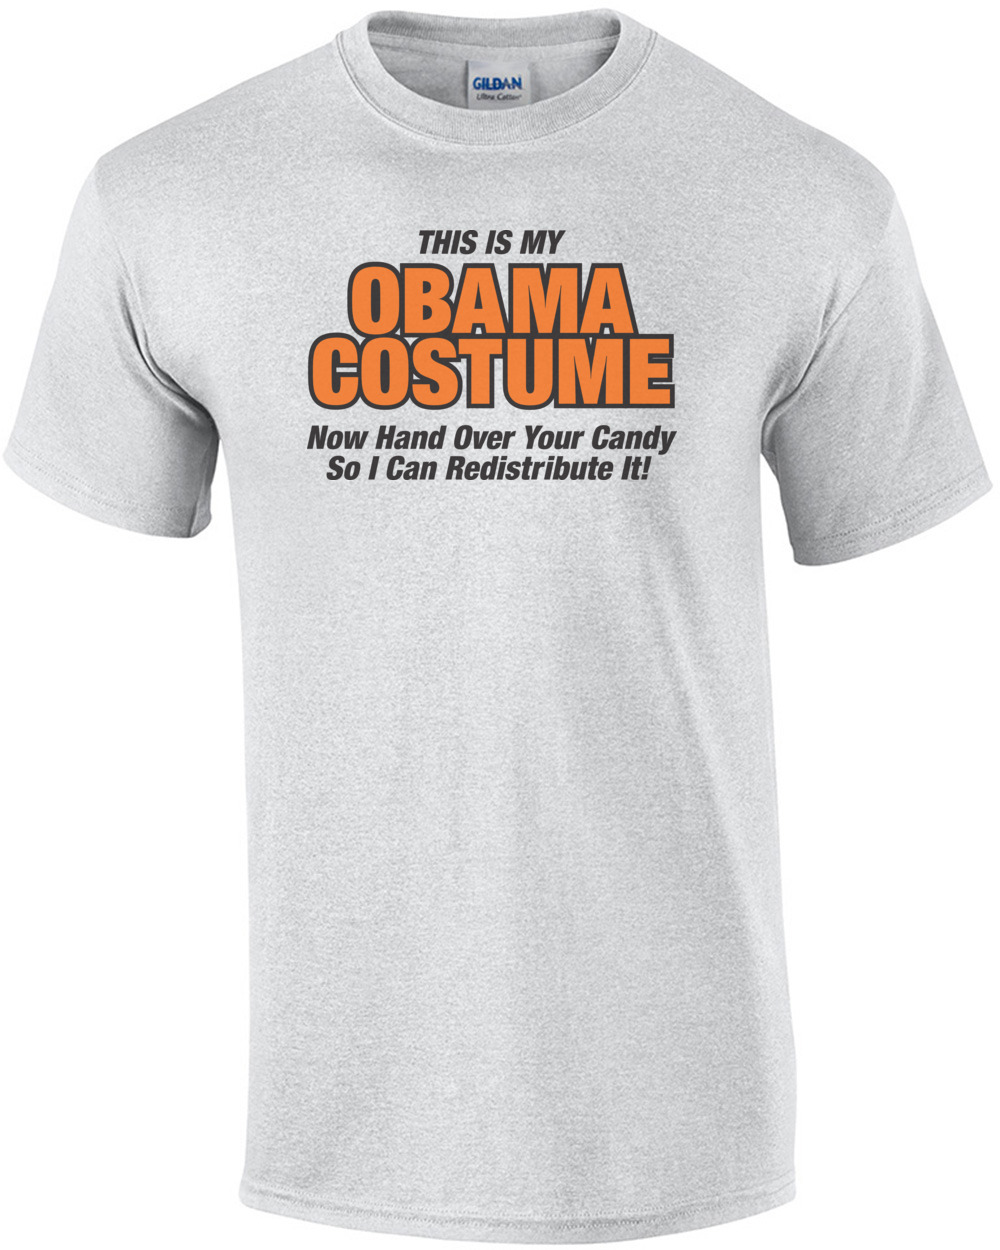 this is my obama costume anti obama halloween t-shirt